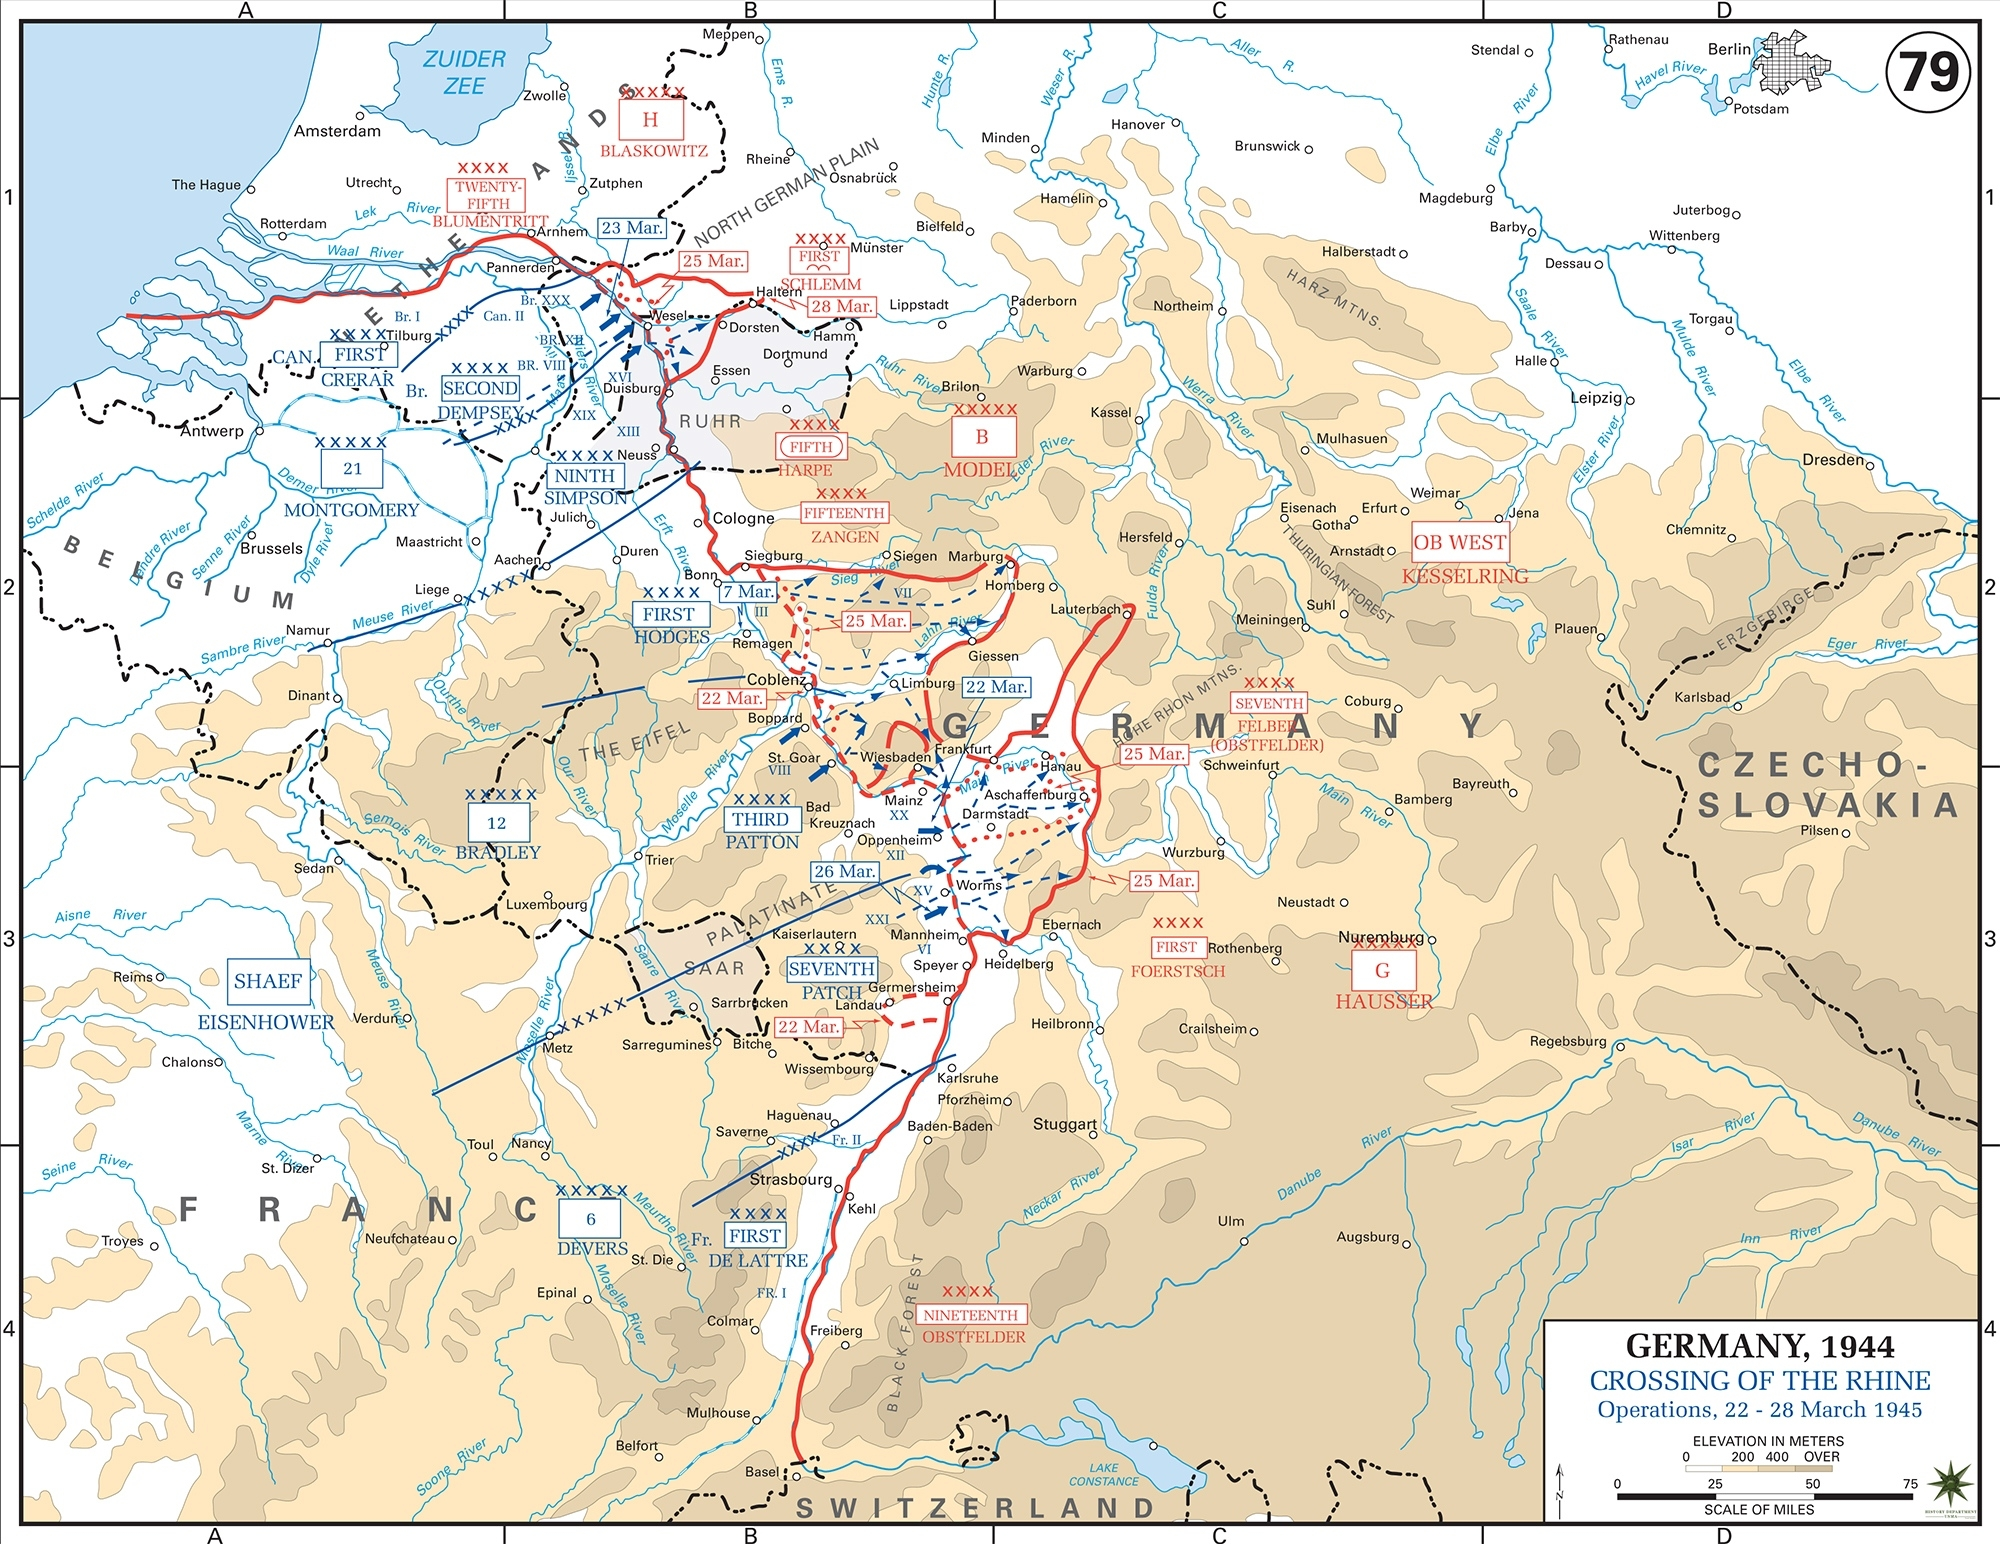 Map Of Wwii: Crossing Of The Rhine 1945 within Rhine River Germany Map